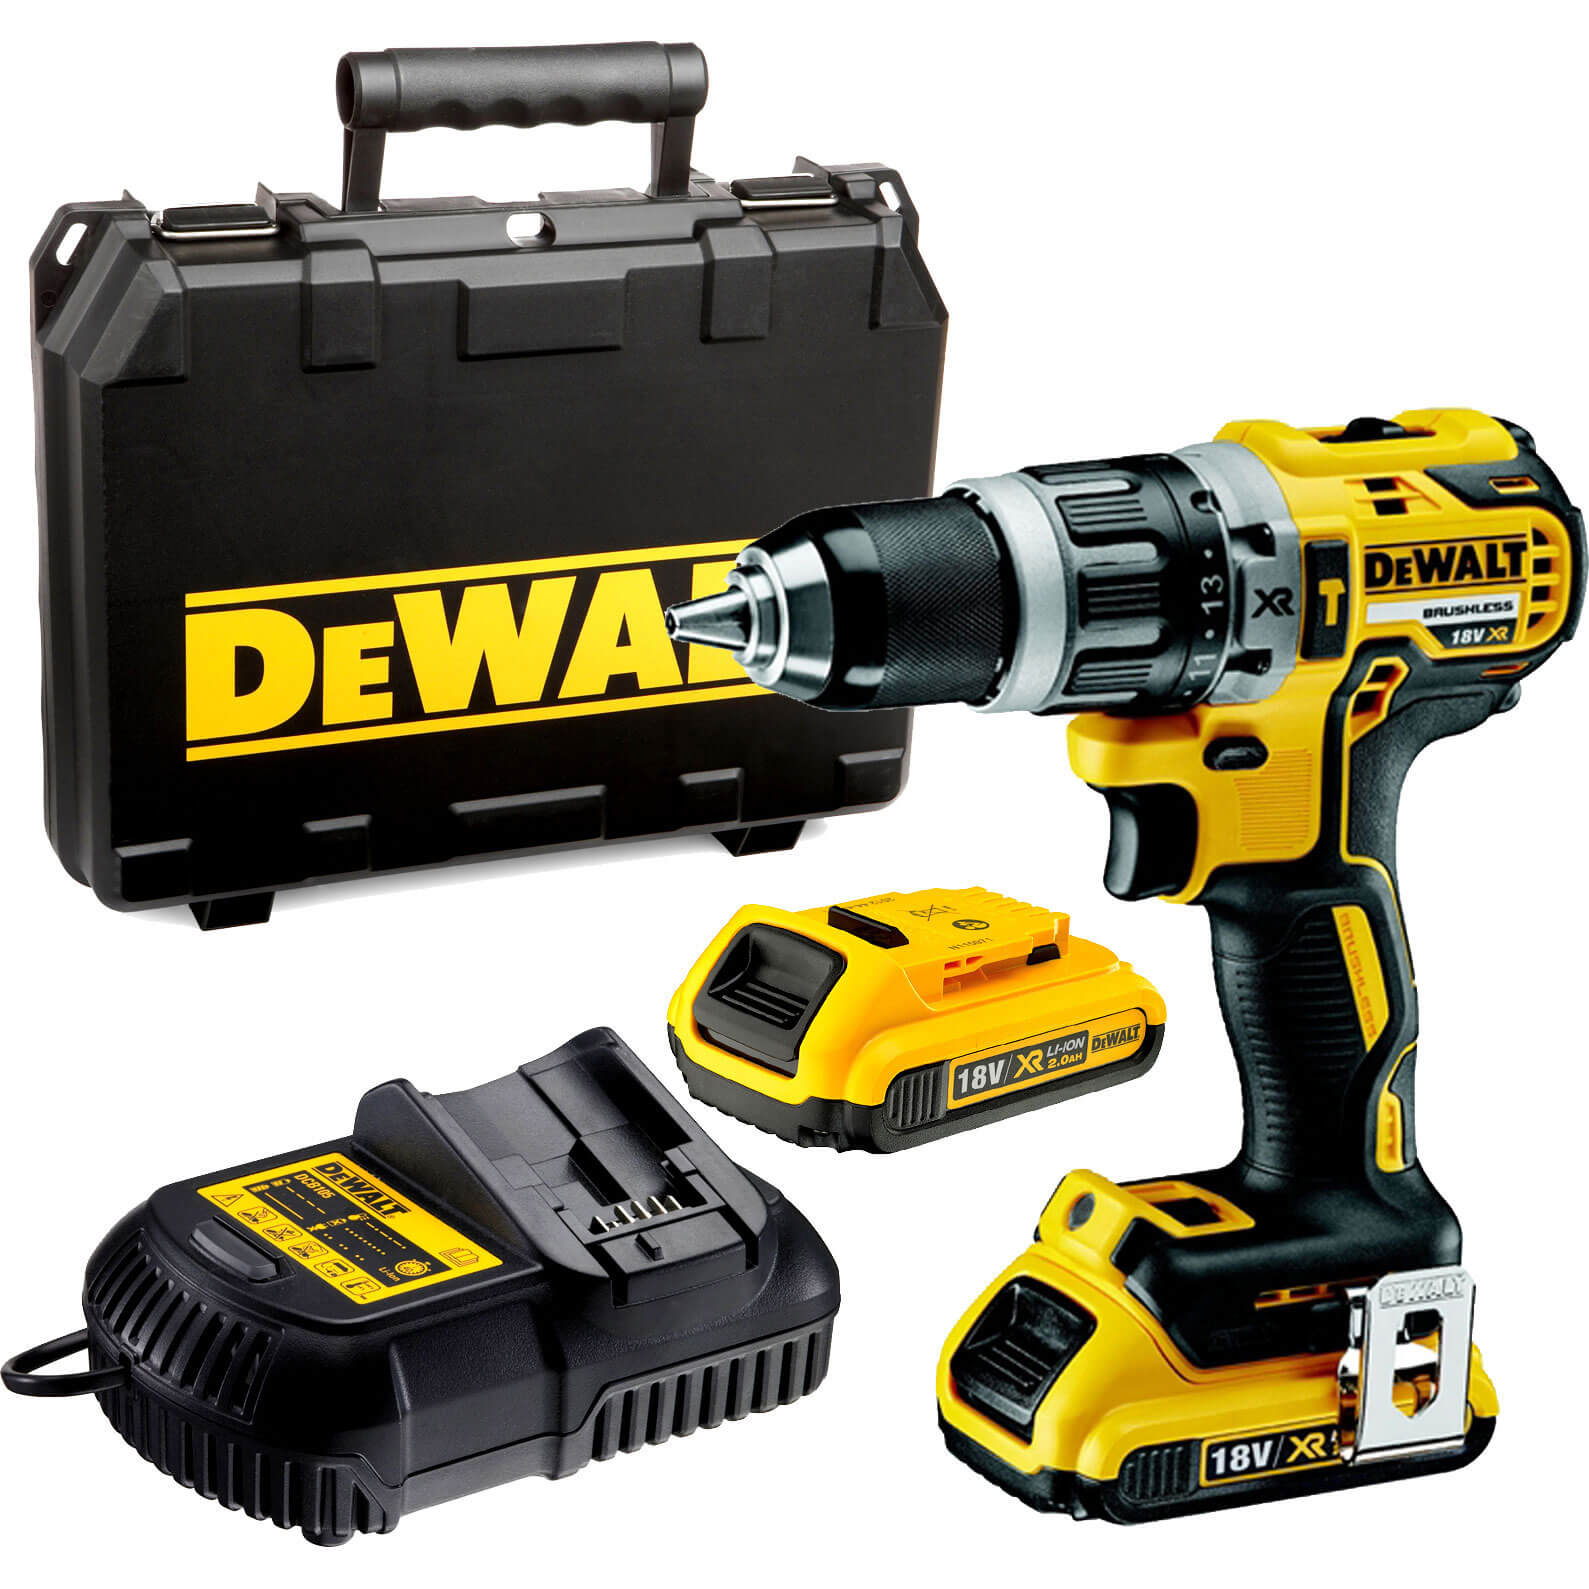 Image of DeWalt DCD796D2 18v Cordless XR Brushless Combi Drill with 2 Lithium Ion Batteries 2ah